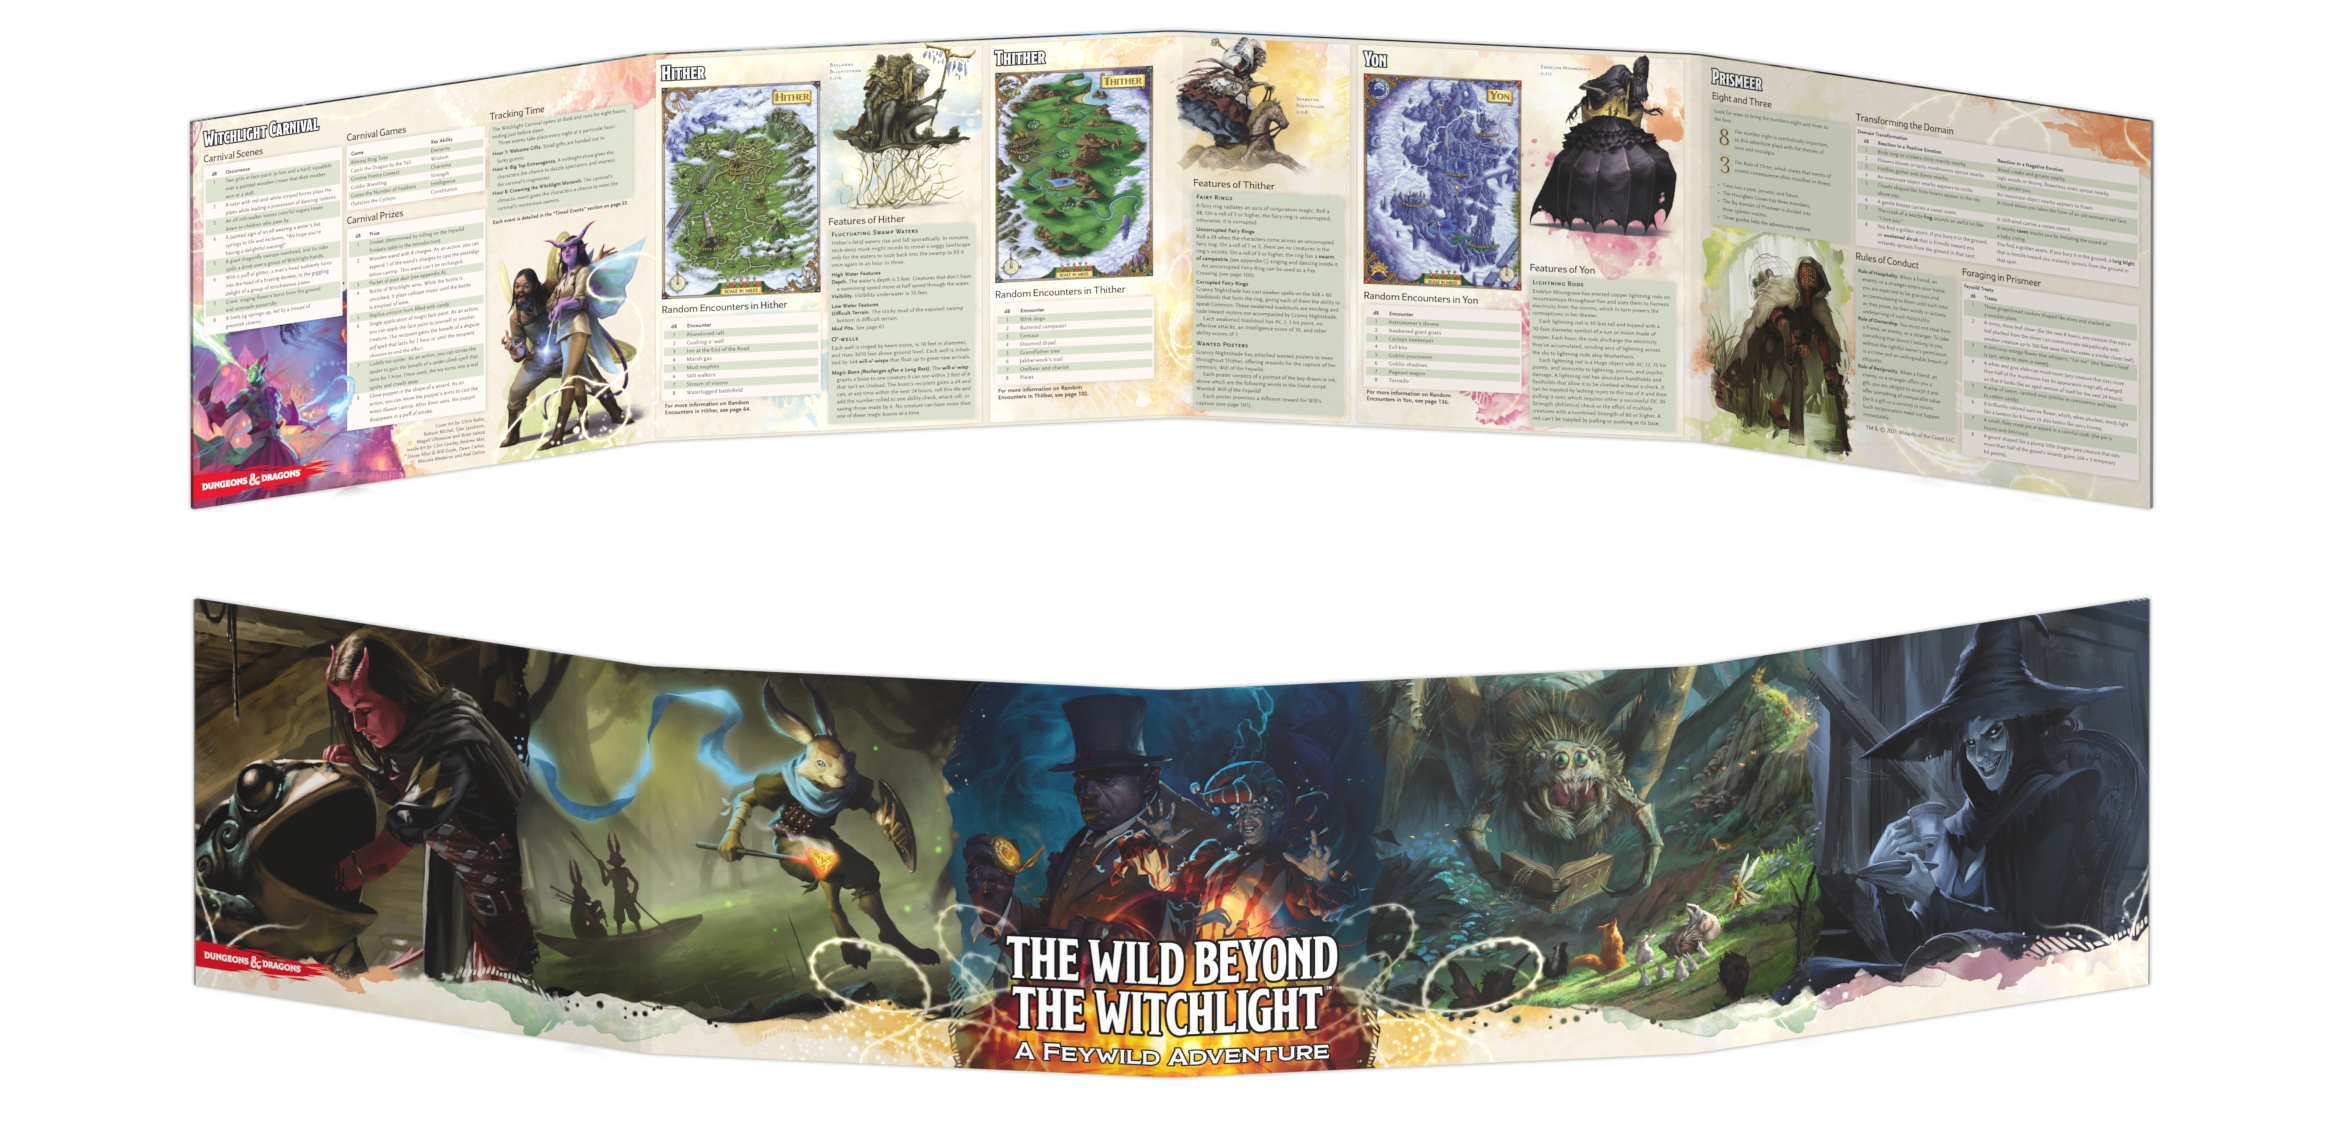 The Wild Beyond The Witchlight DM Screen - Gale Force Nine